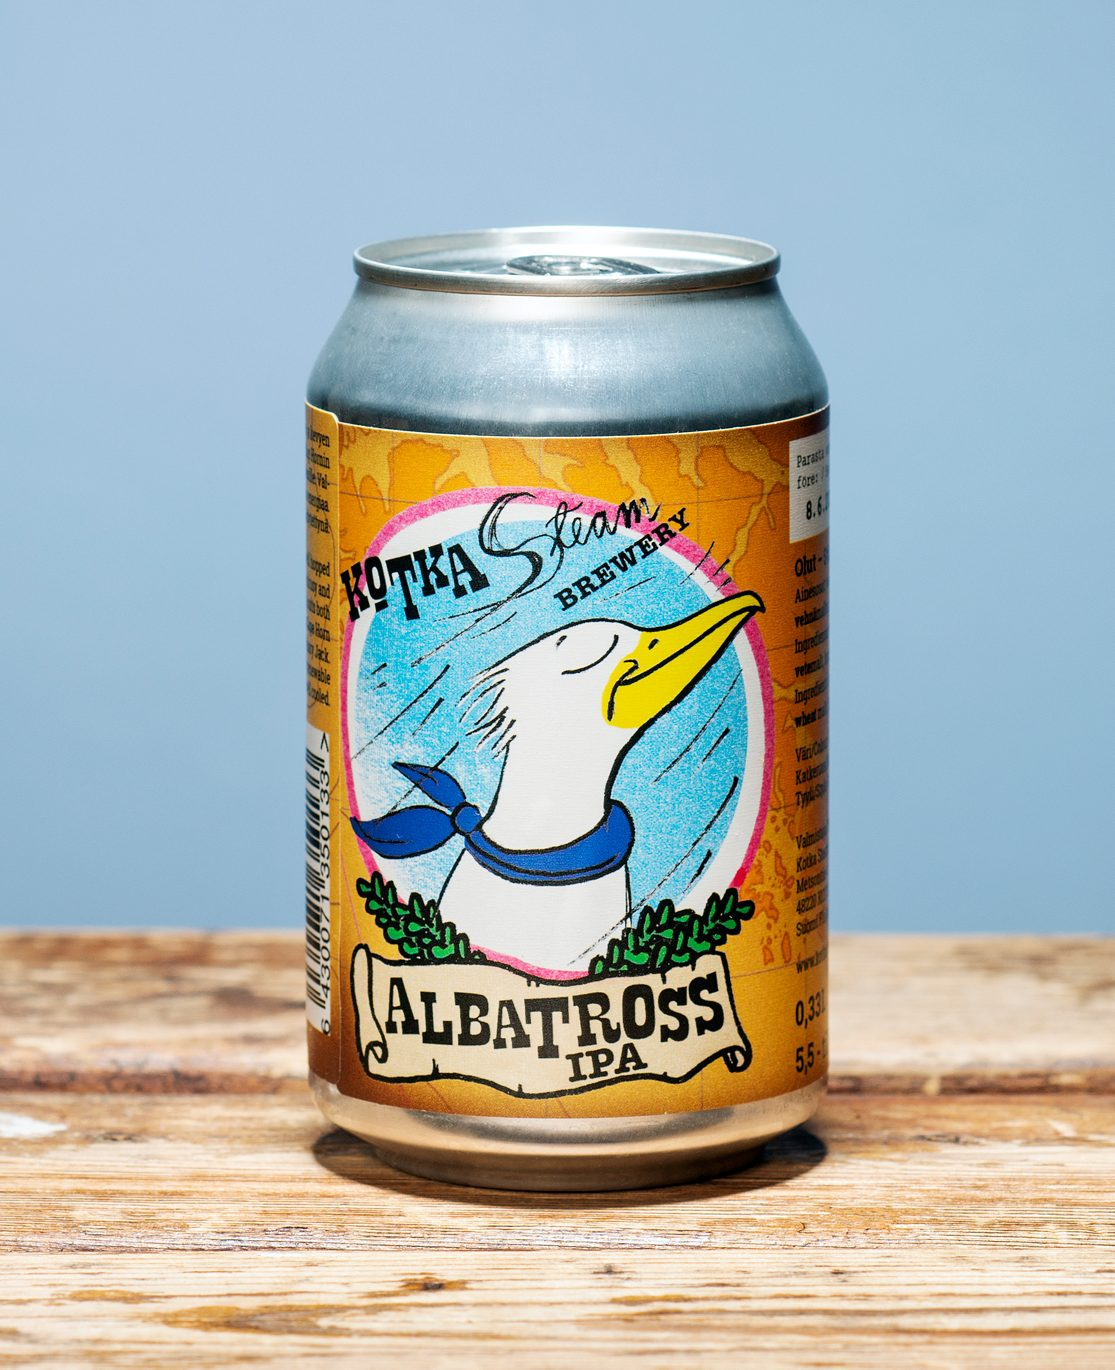 Kotka Steam Brewery - Albatross IPA